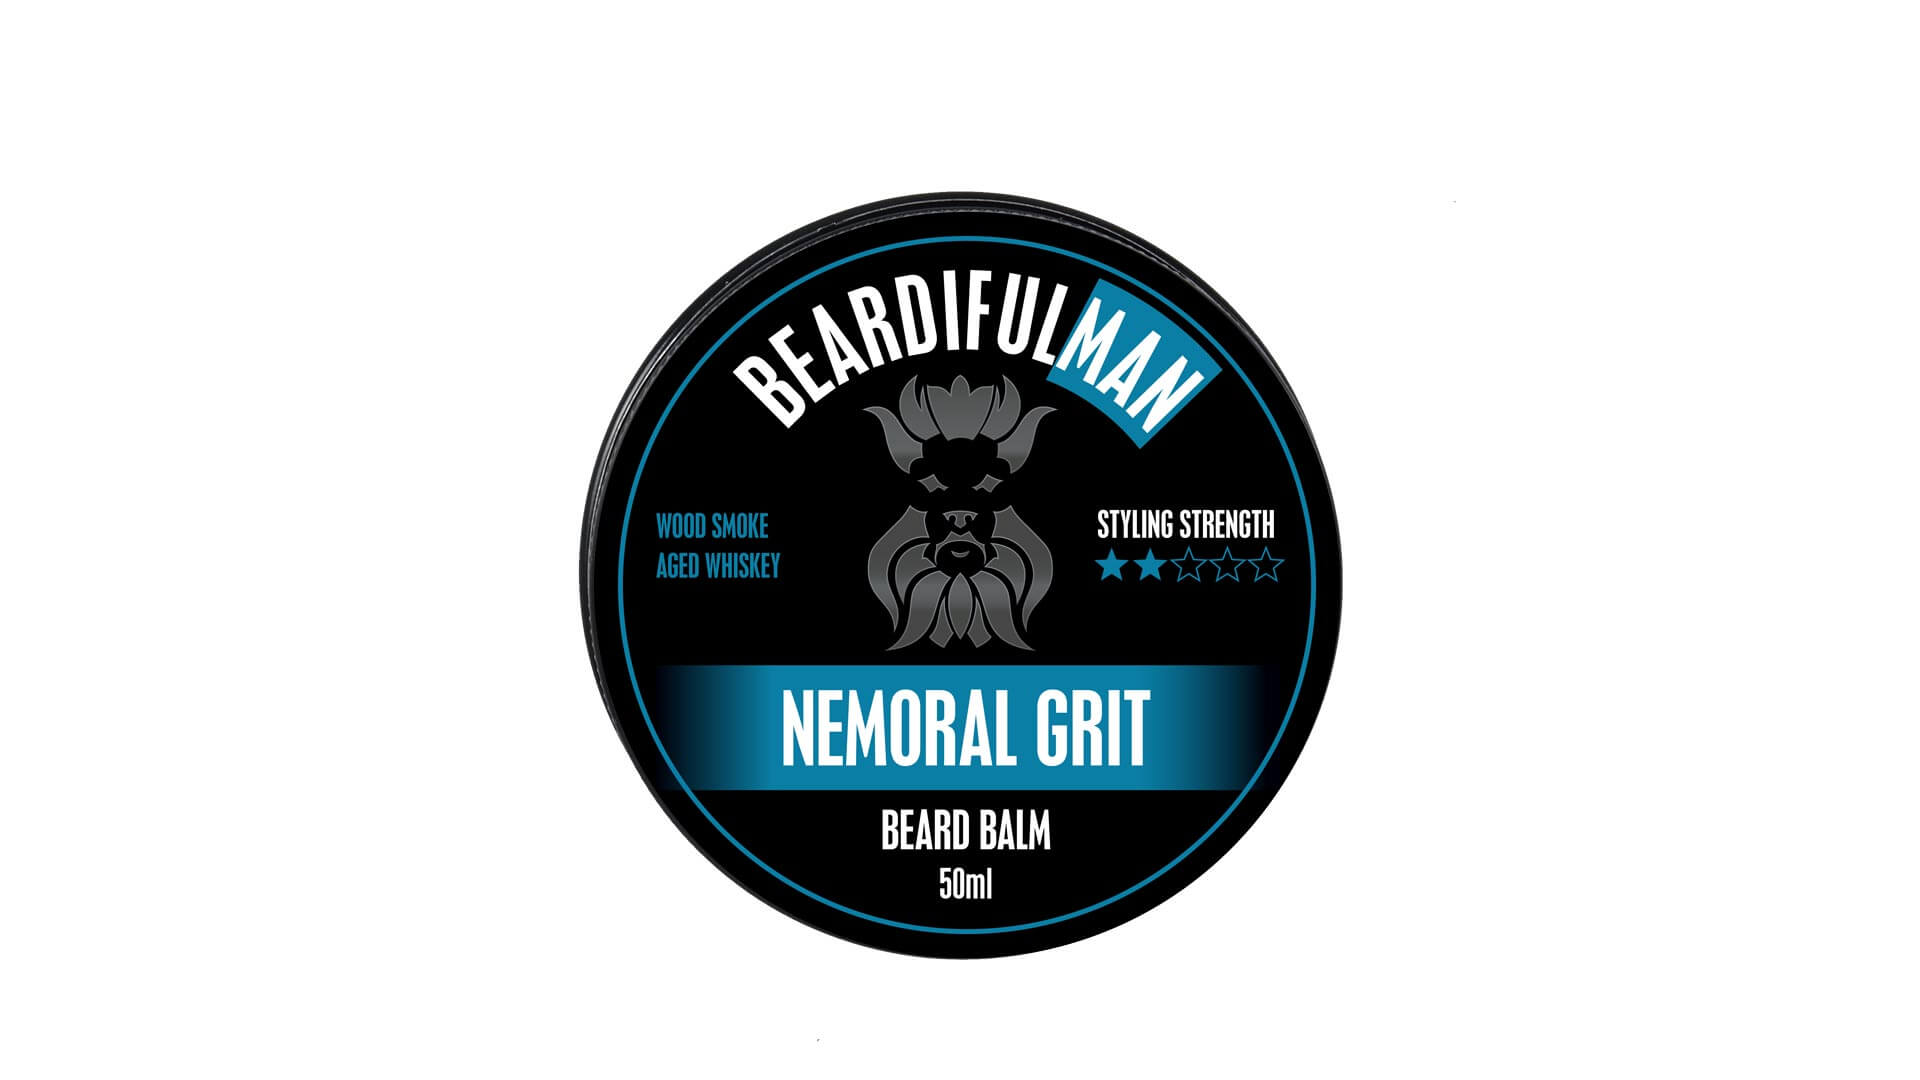 Single 50ml tin of Nemoral Grit premium quality beard balm from Beardifulman